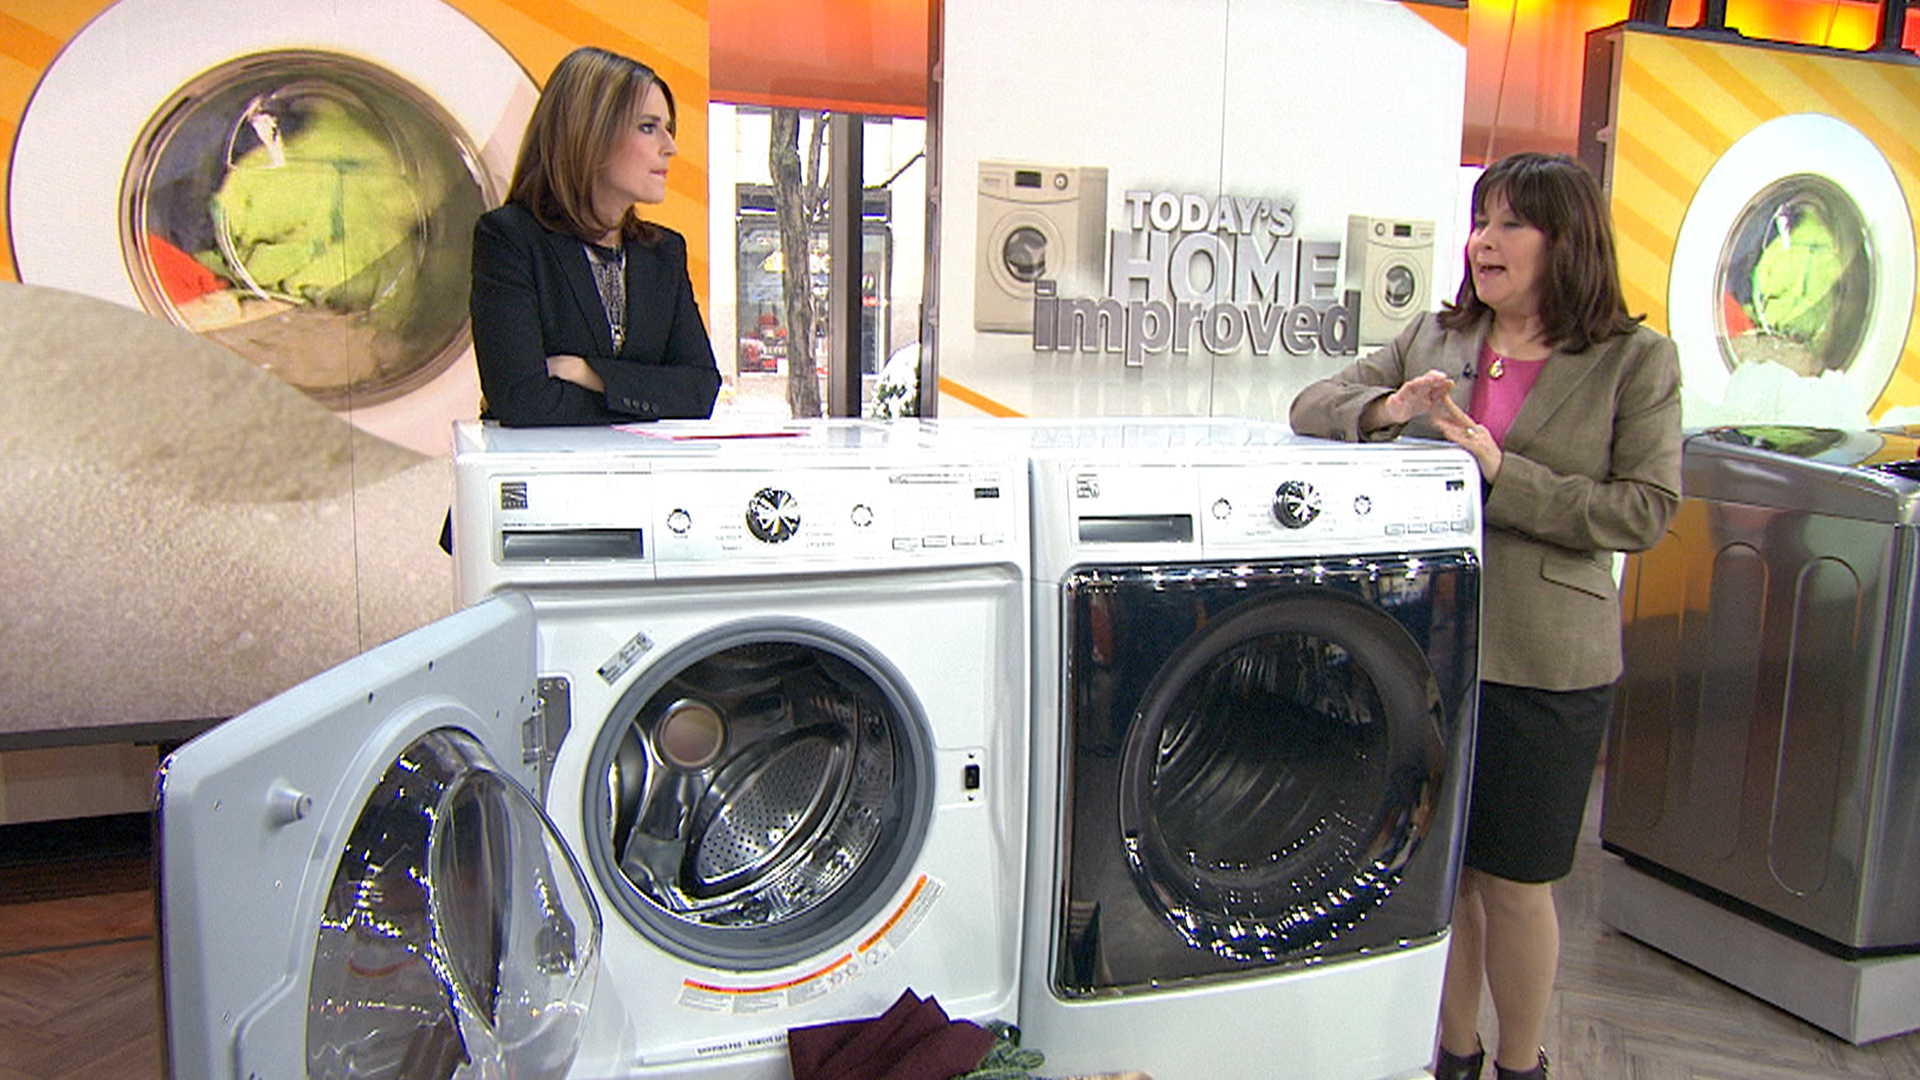 How to find the best washer and dryer TODAY